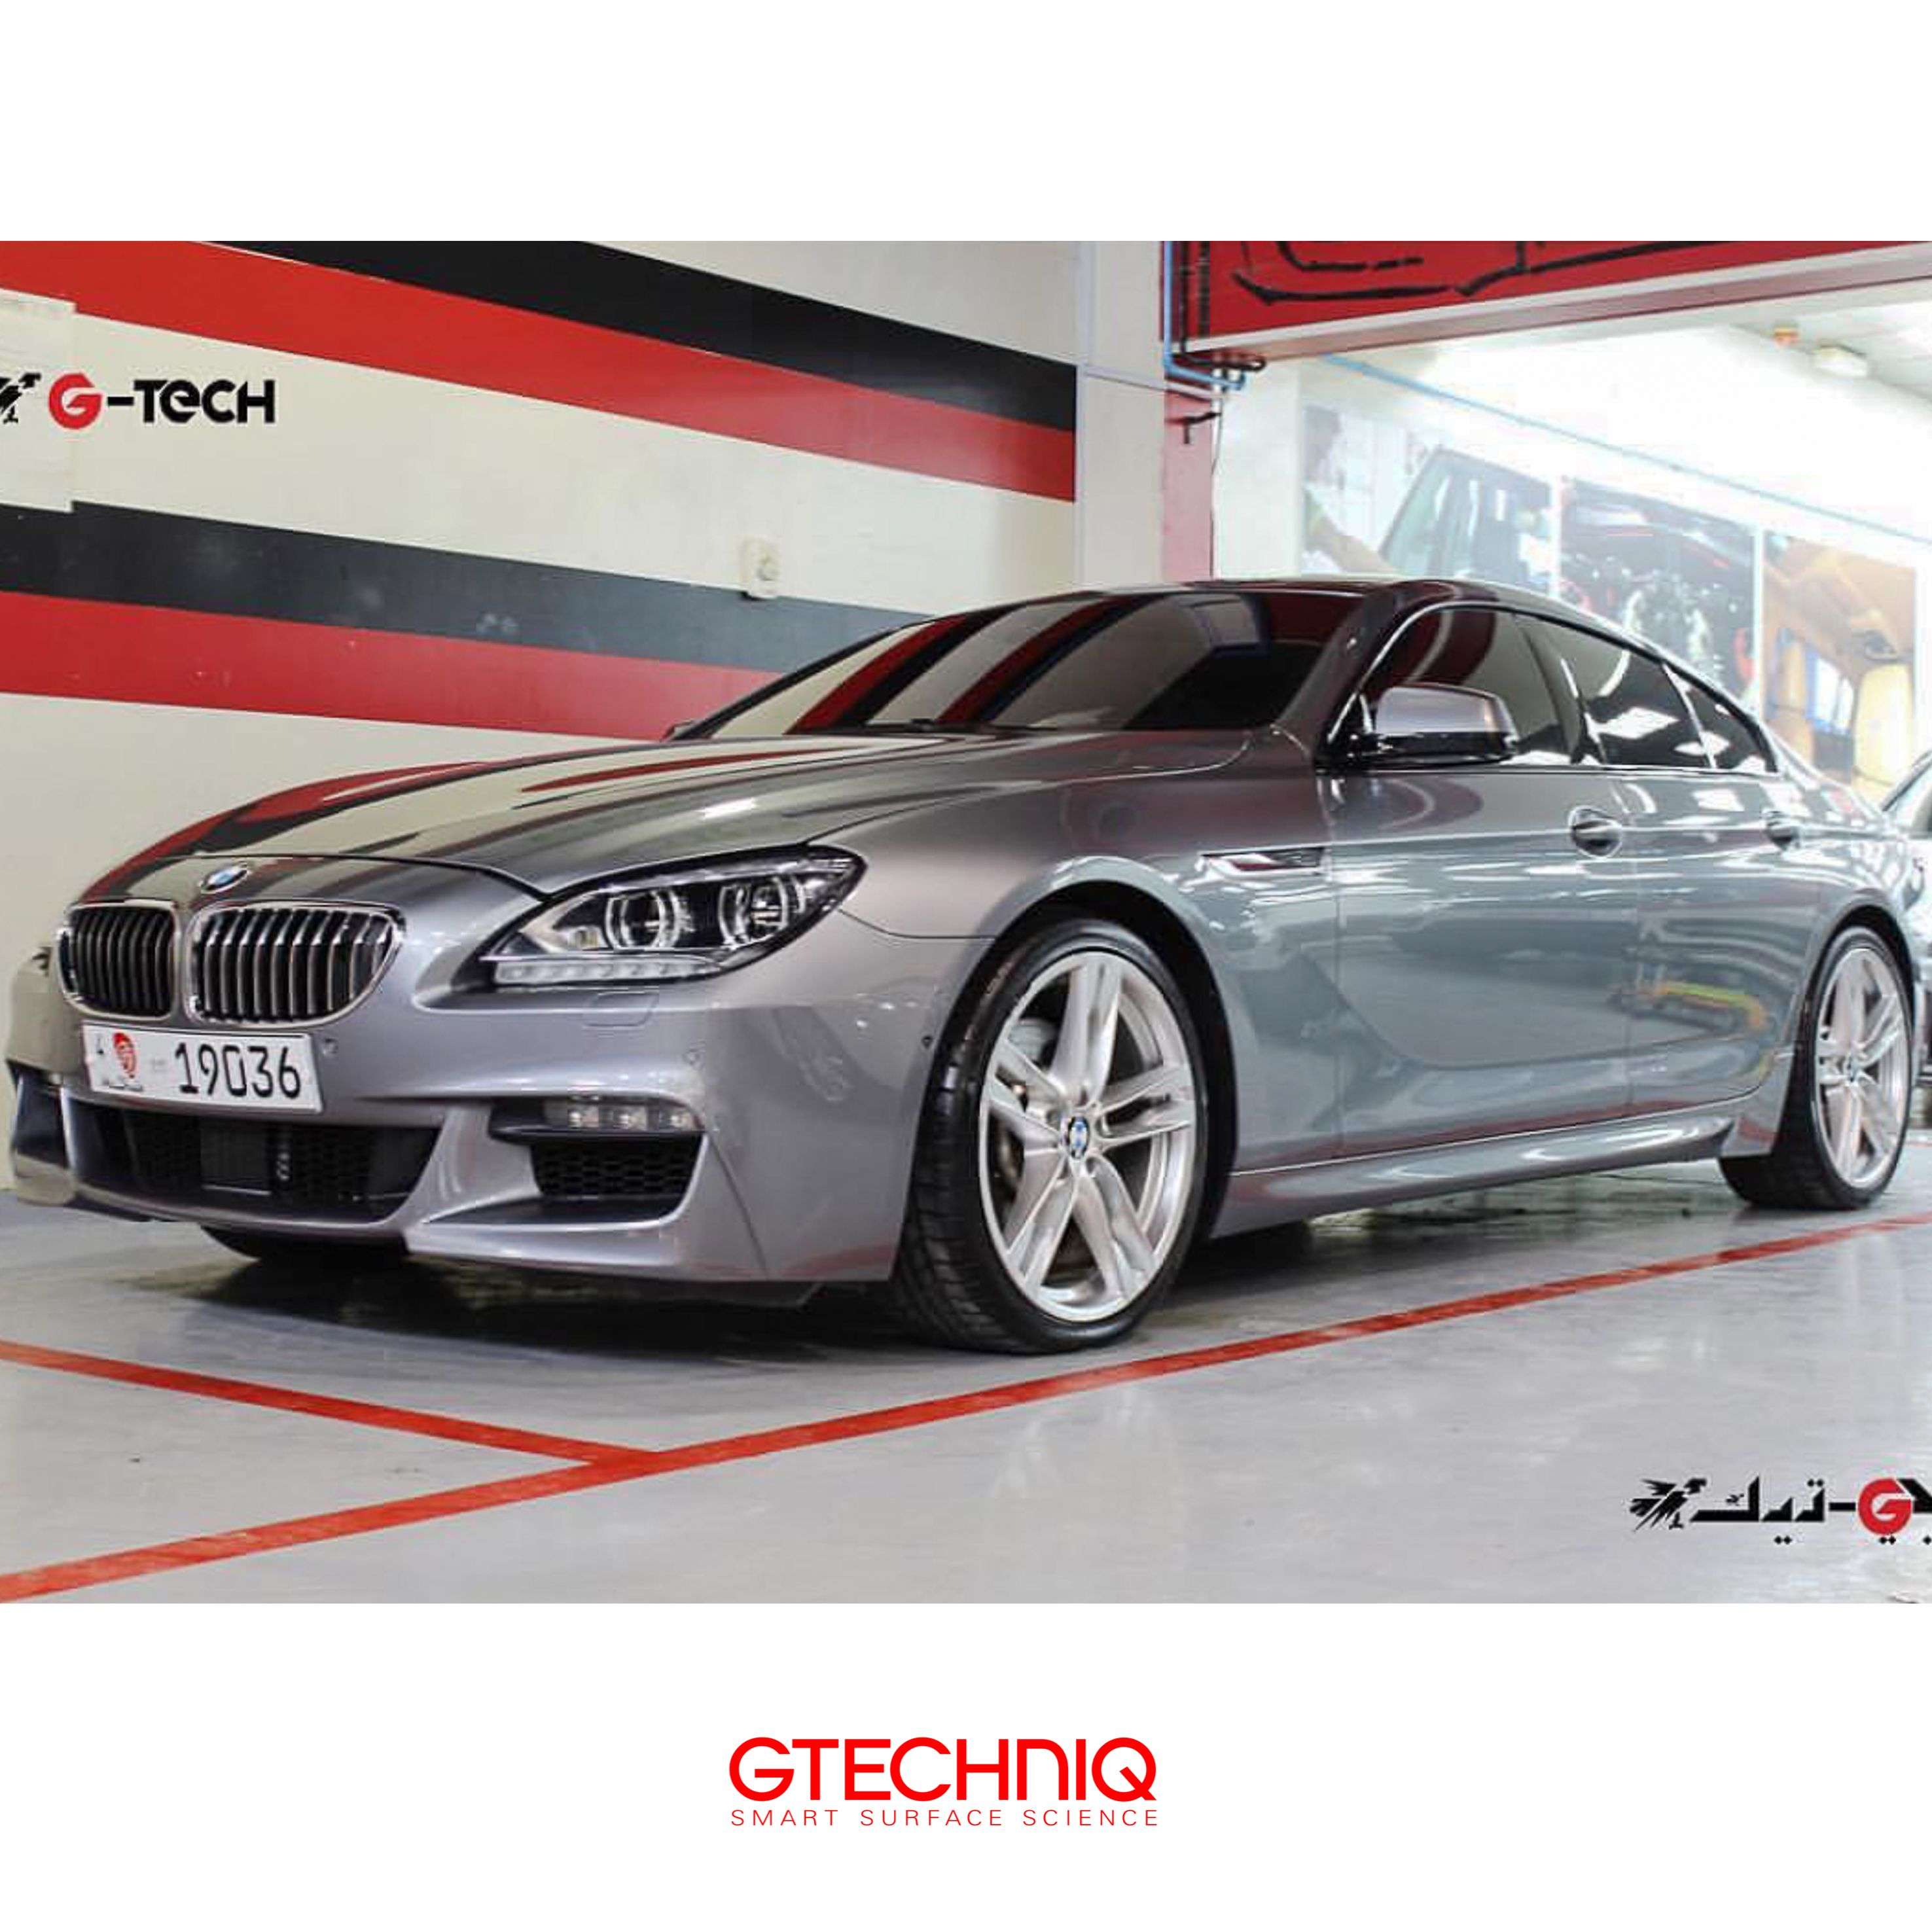 #BMW 640i protected by Gtechniq and #Gtechniq Stockist +Gtech Wetless  🌐 PROTECT THE THINGS YOU LOVE .إحمى كل ما تحب